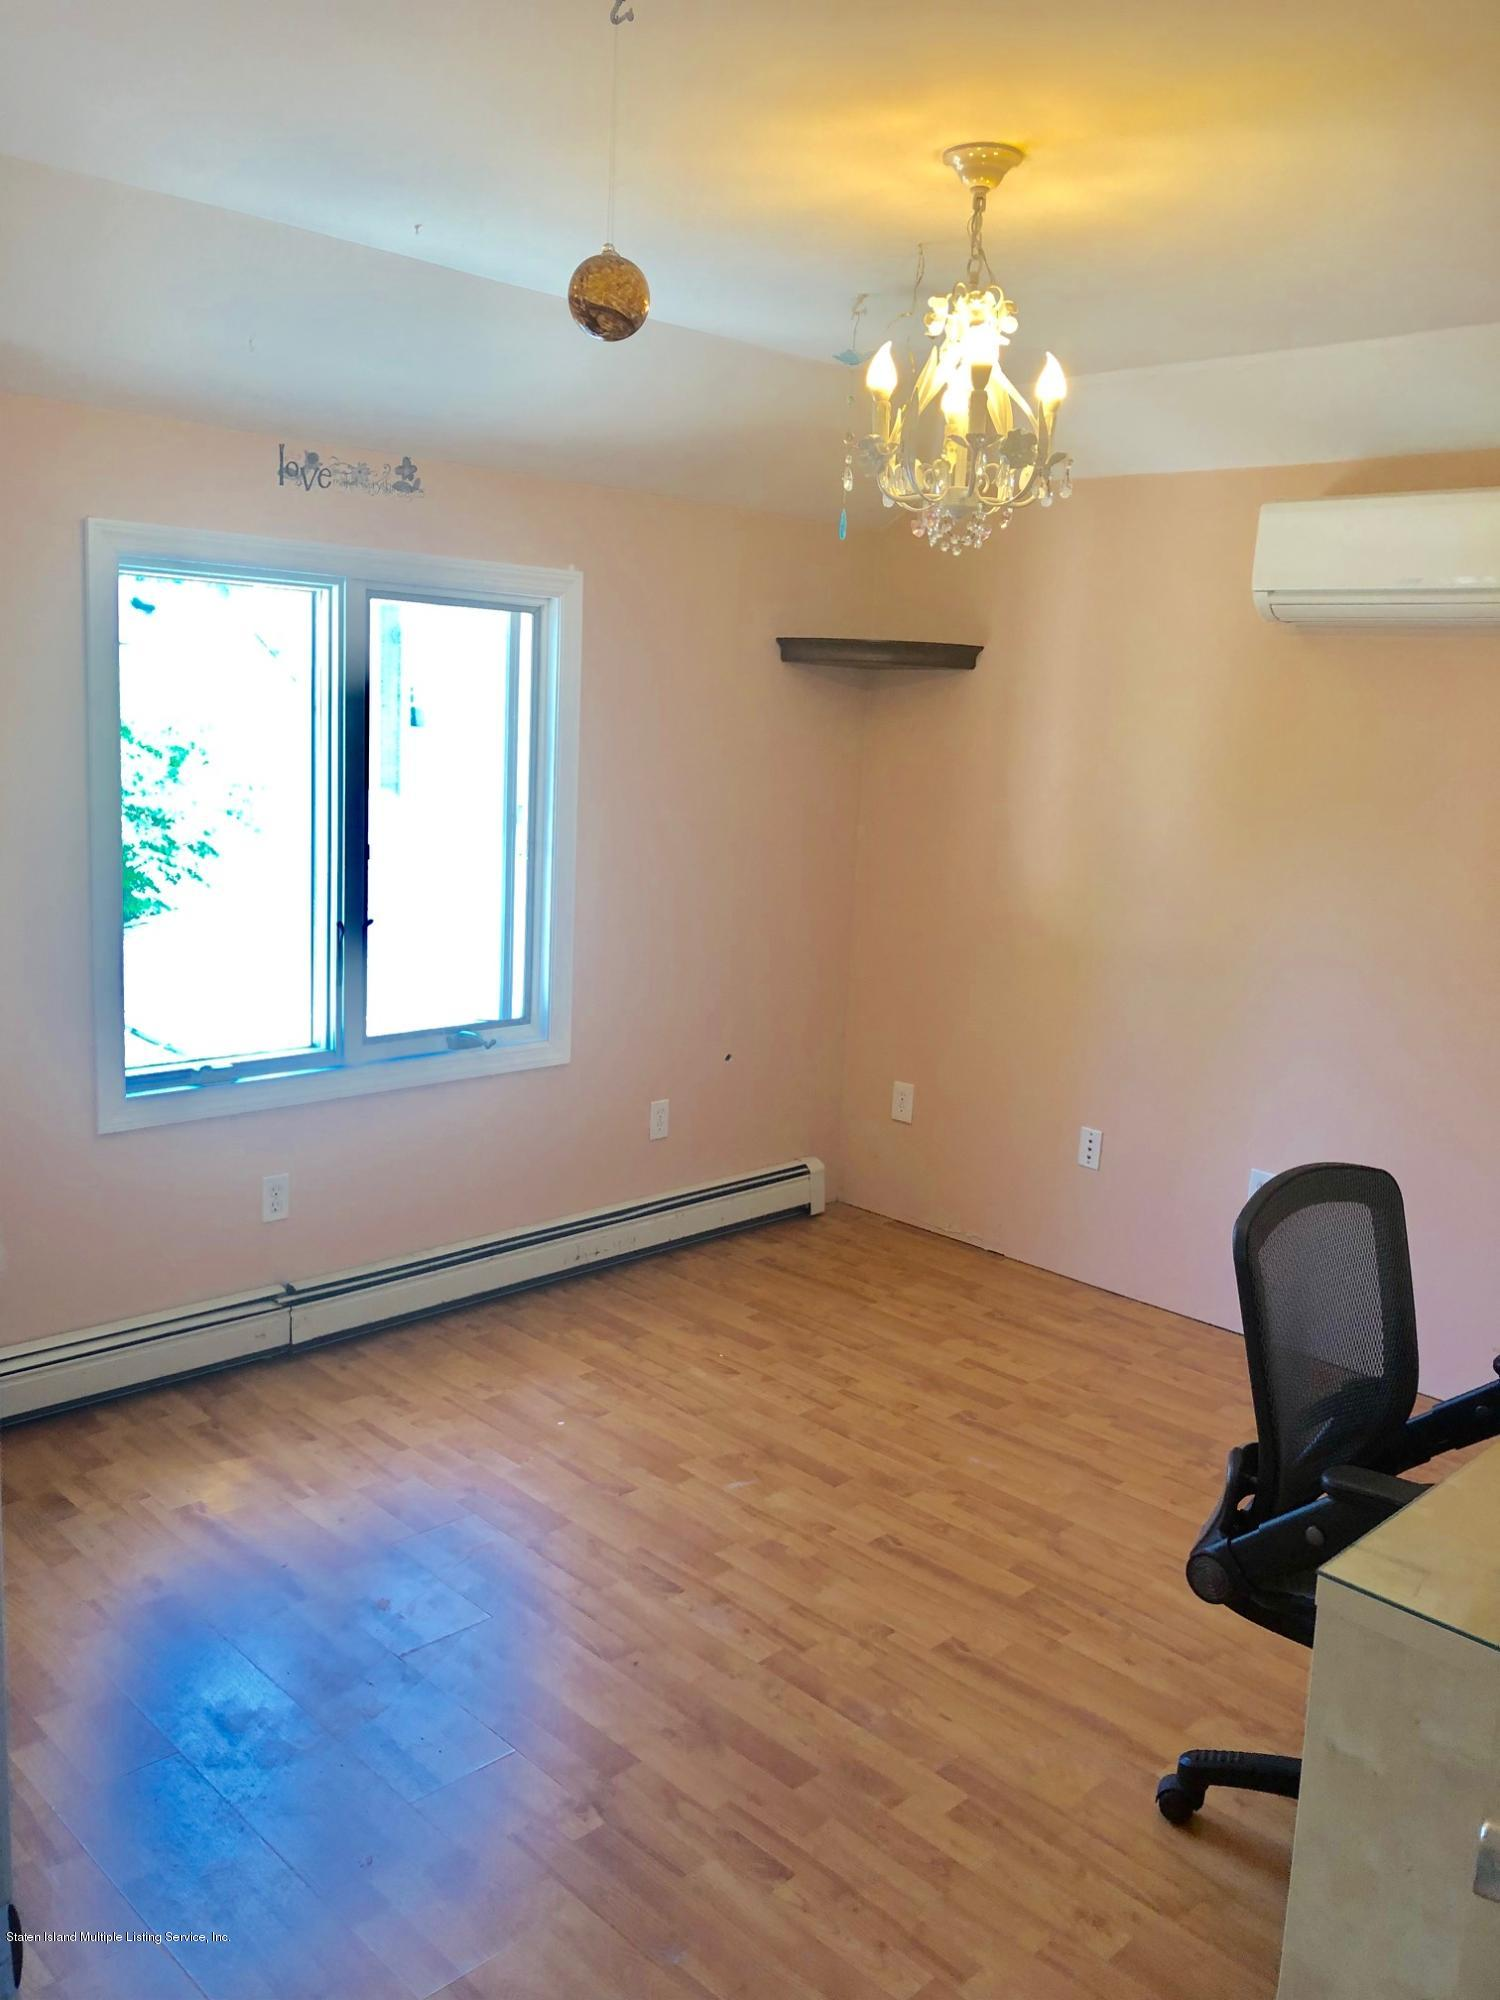 Single Family - Detached 143 Burbank Avenue  Staten Island, NY 10306, MLS-1129725-14